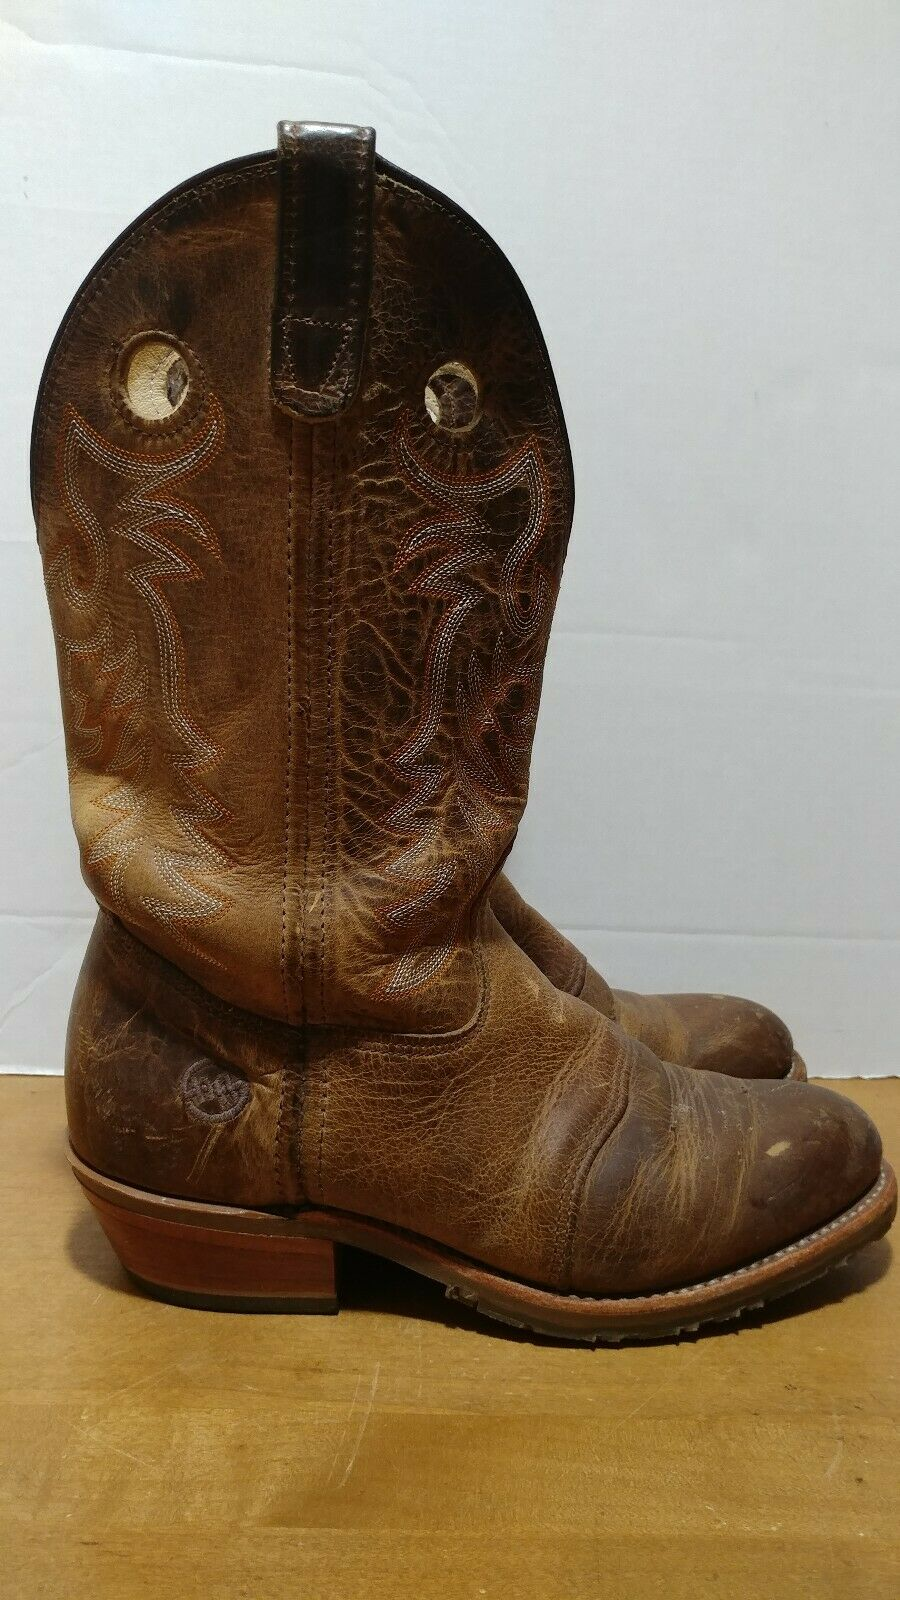 Double H Women's Ultragel Ice Buckaro Leather Cowboy Boots Size 10 W DH5159 USA